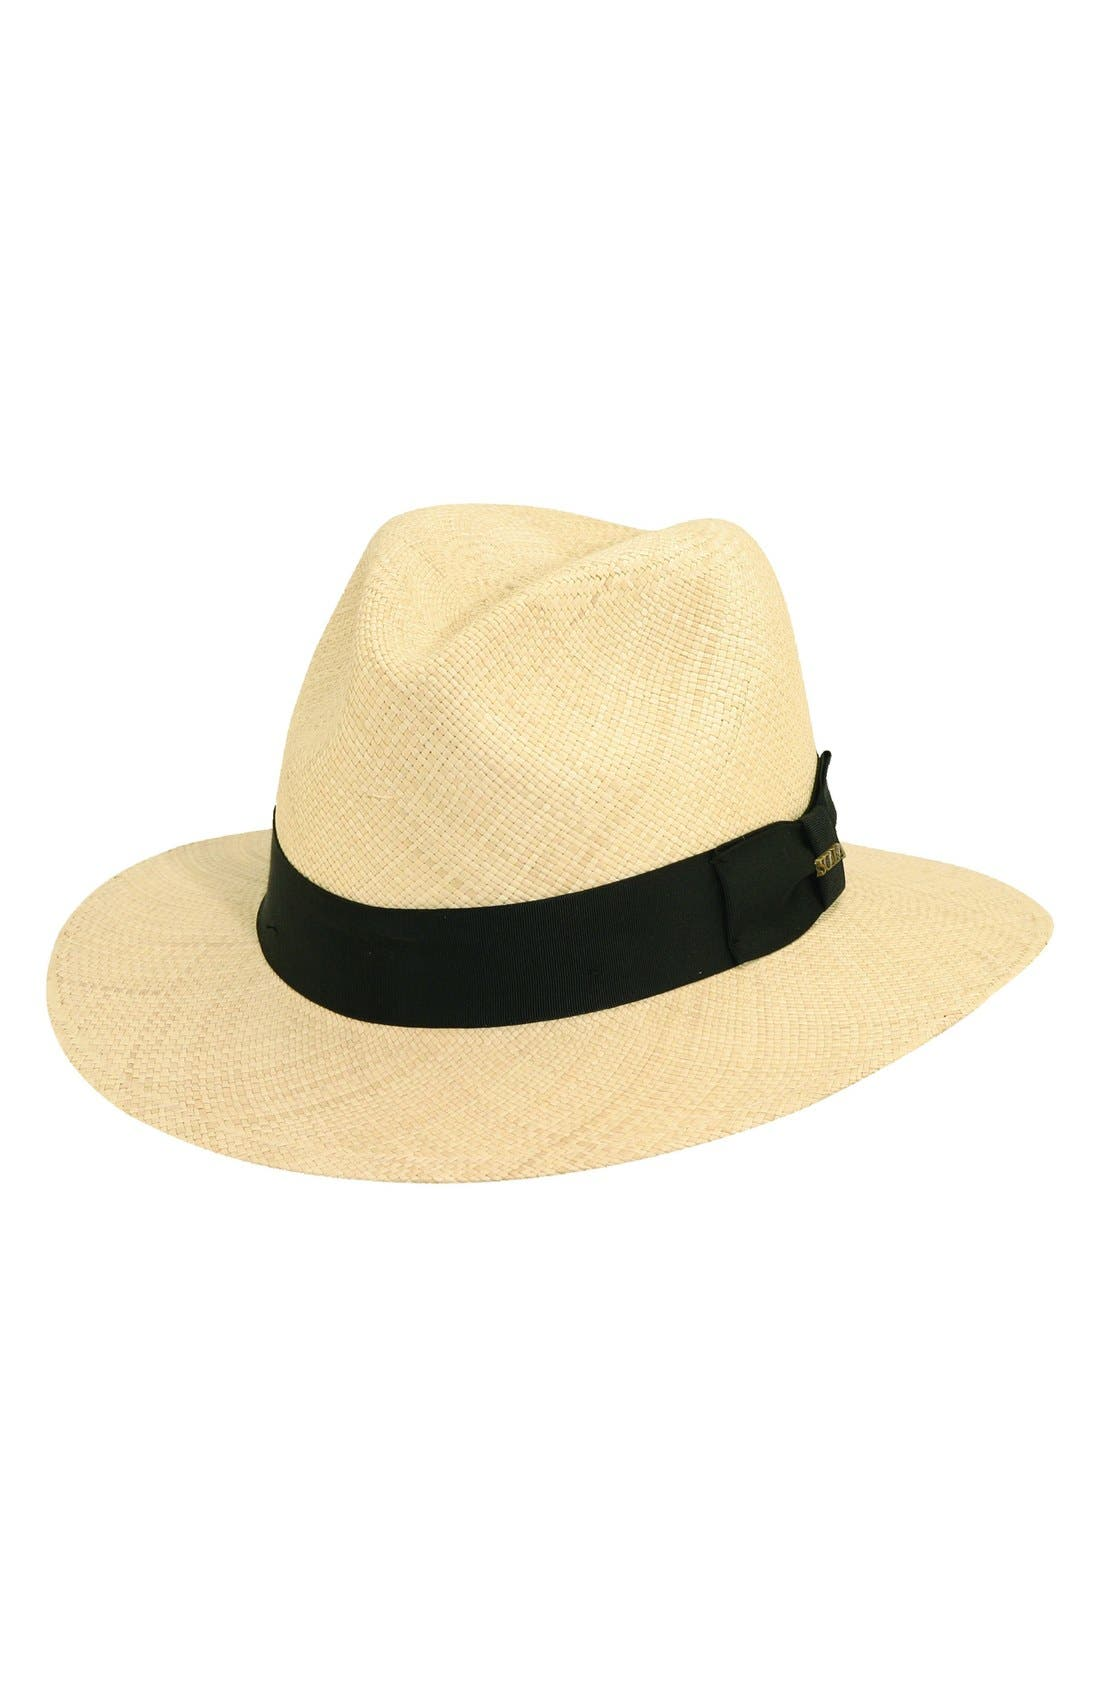 Scala Panama Straw Safari Hat